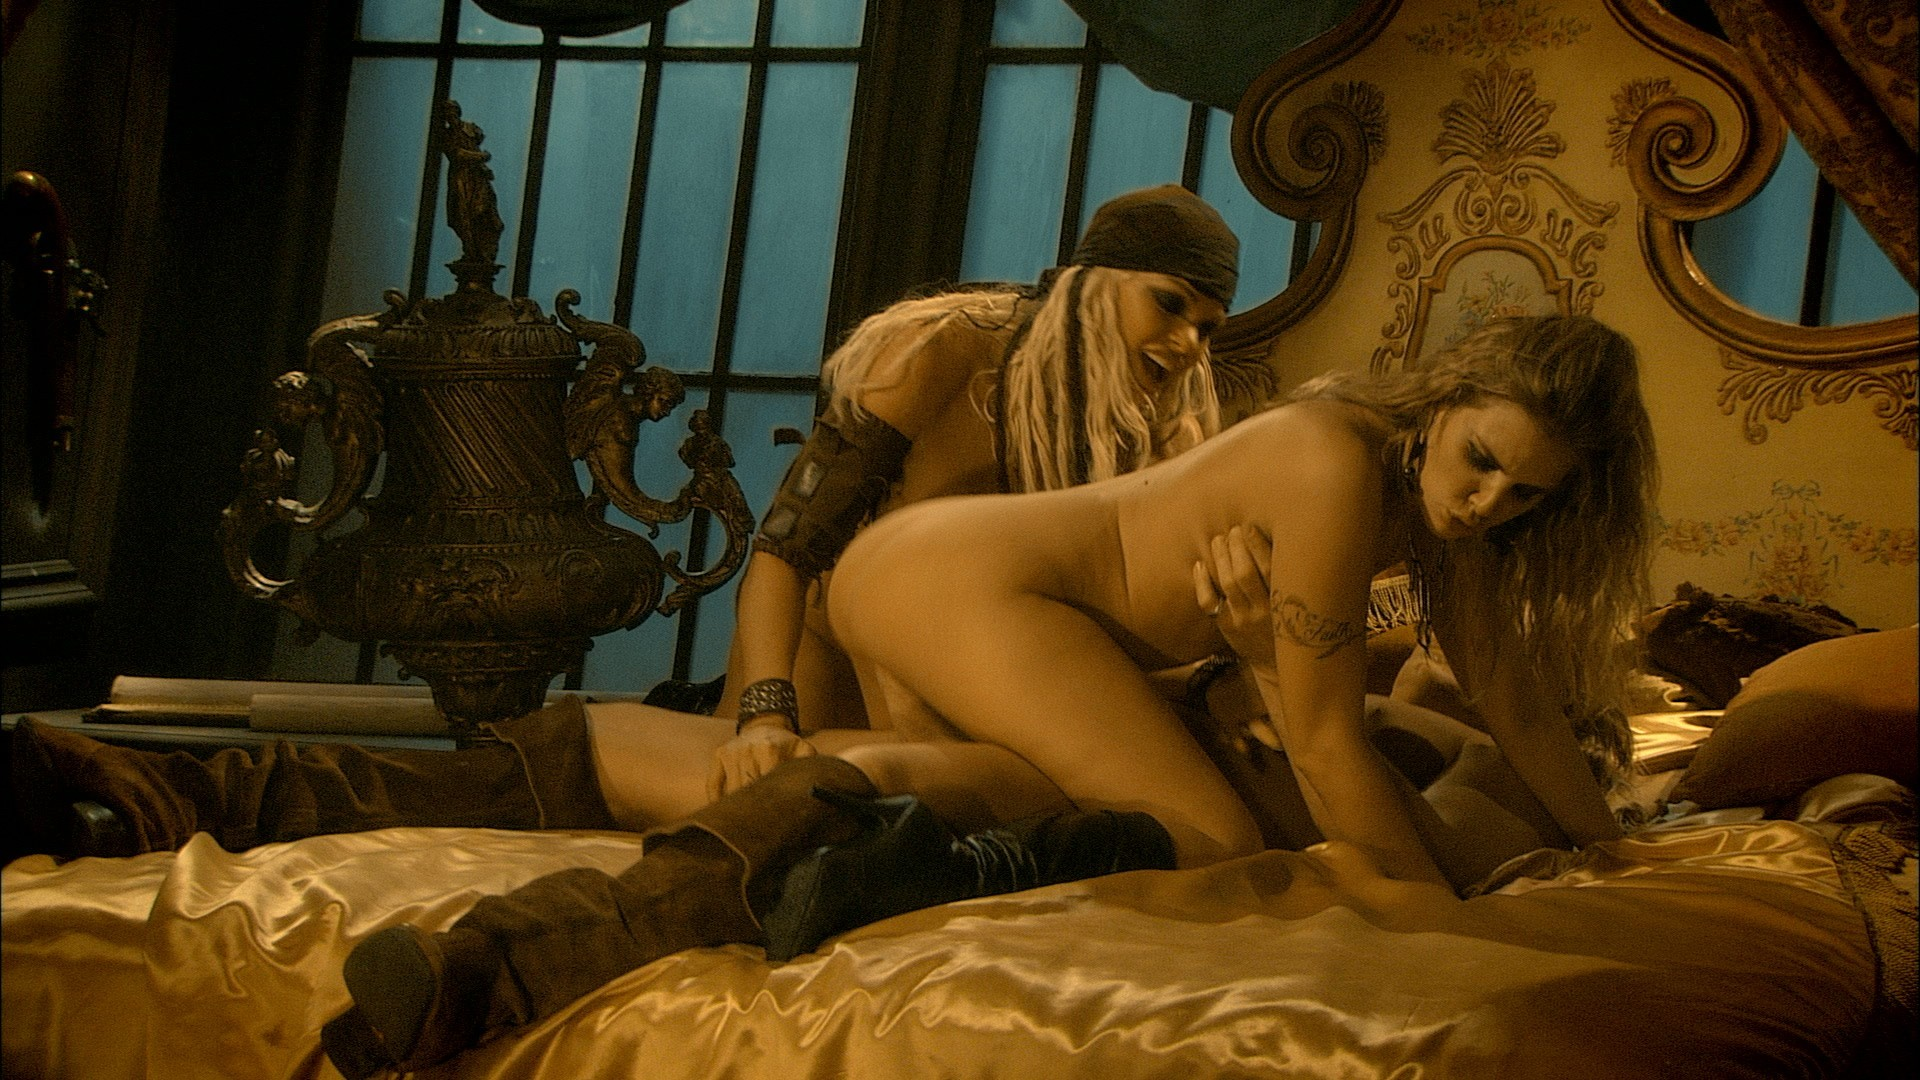 Pirates 2 adult movie naked scene